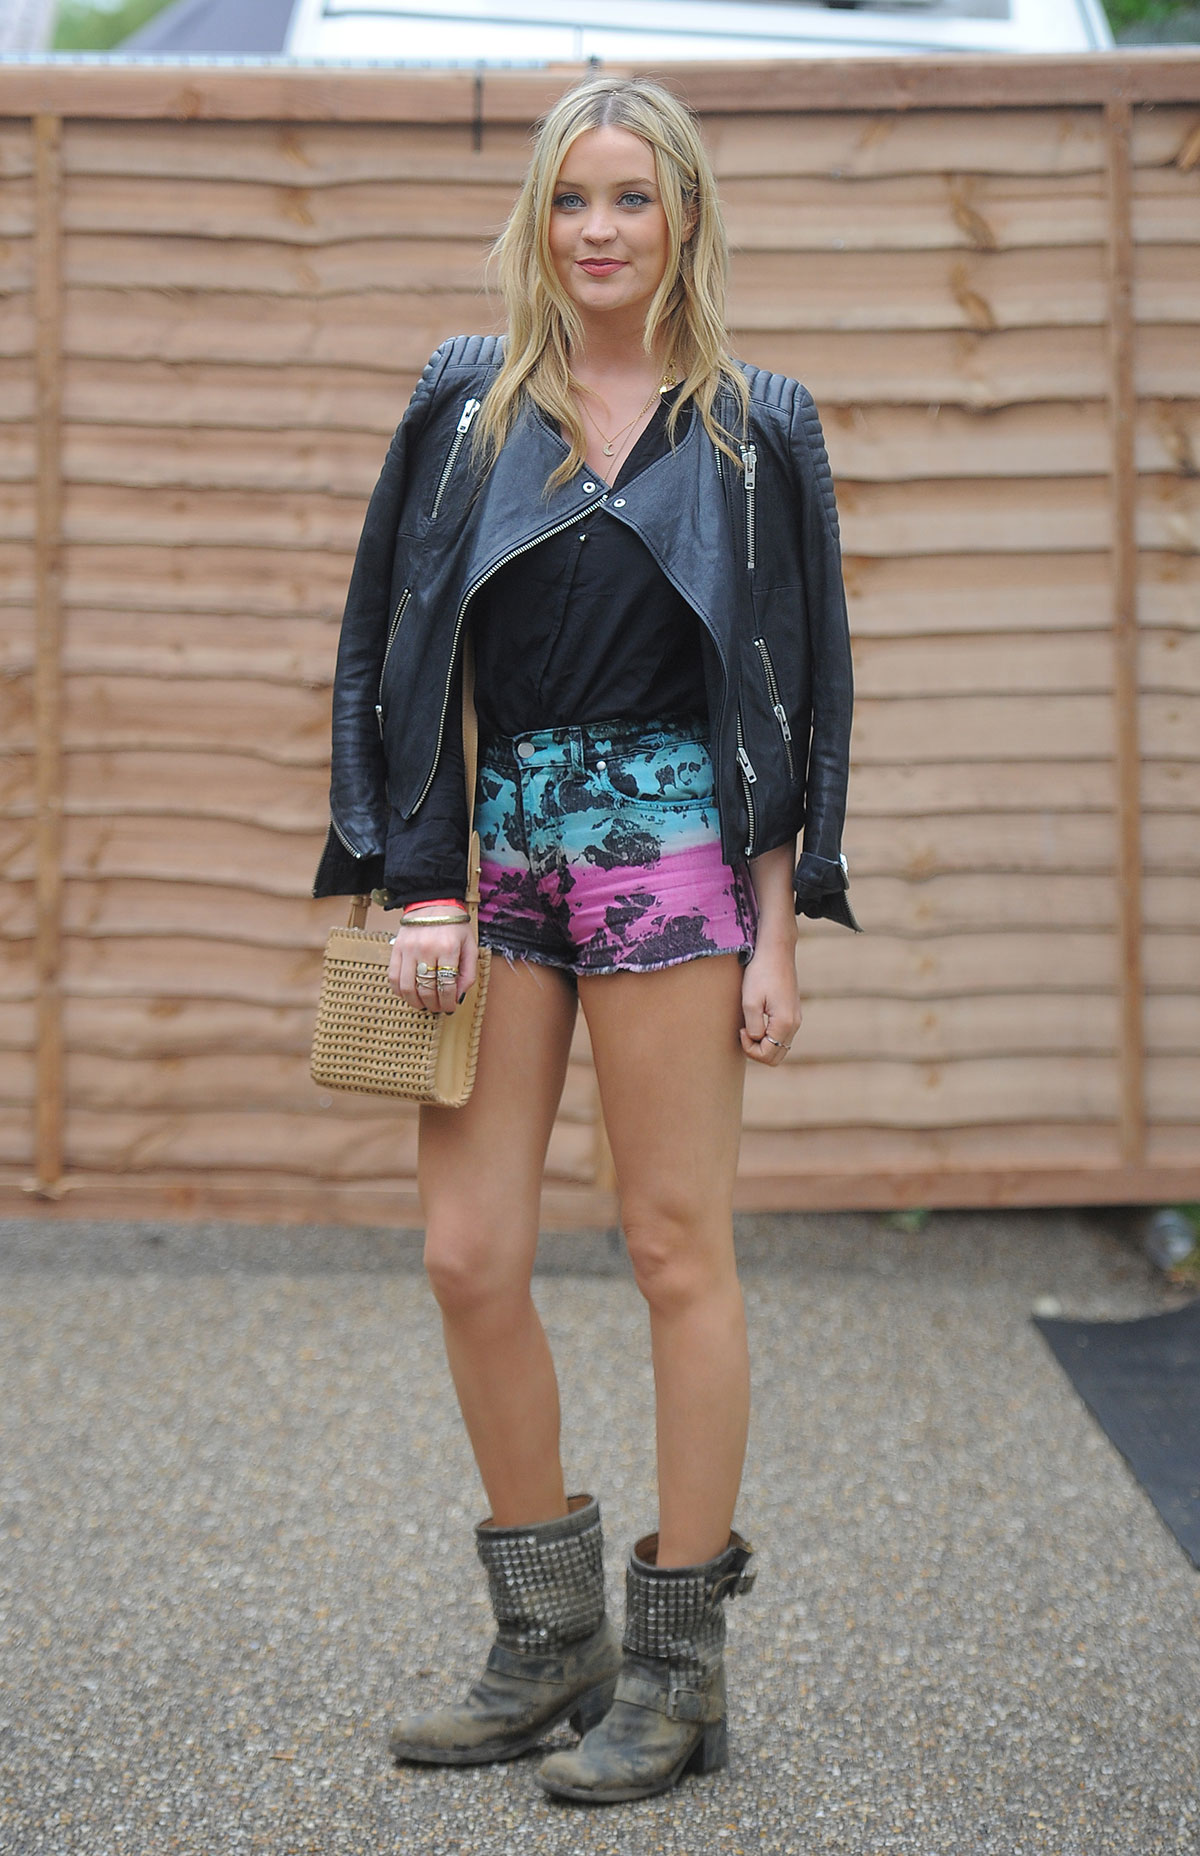 Laura Whitmore attends Wireless Festival